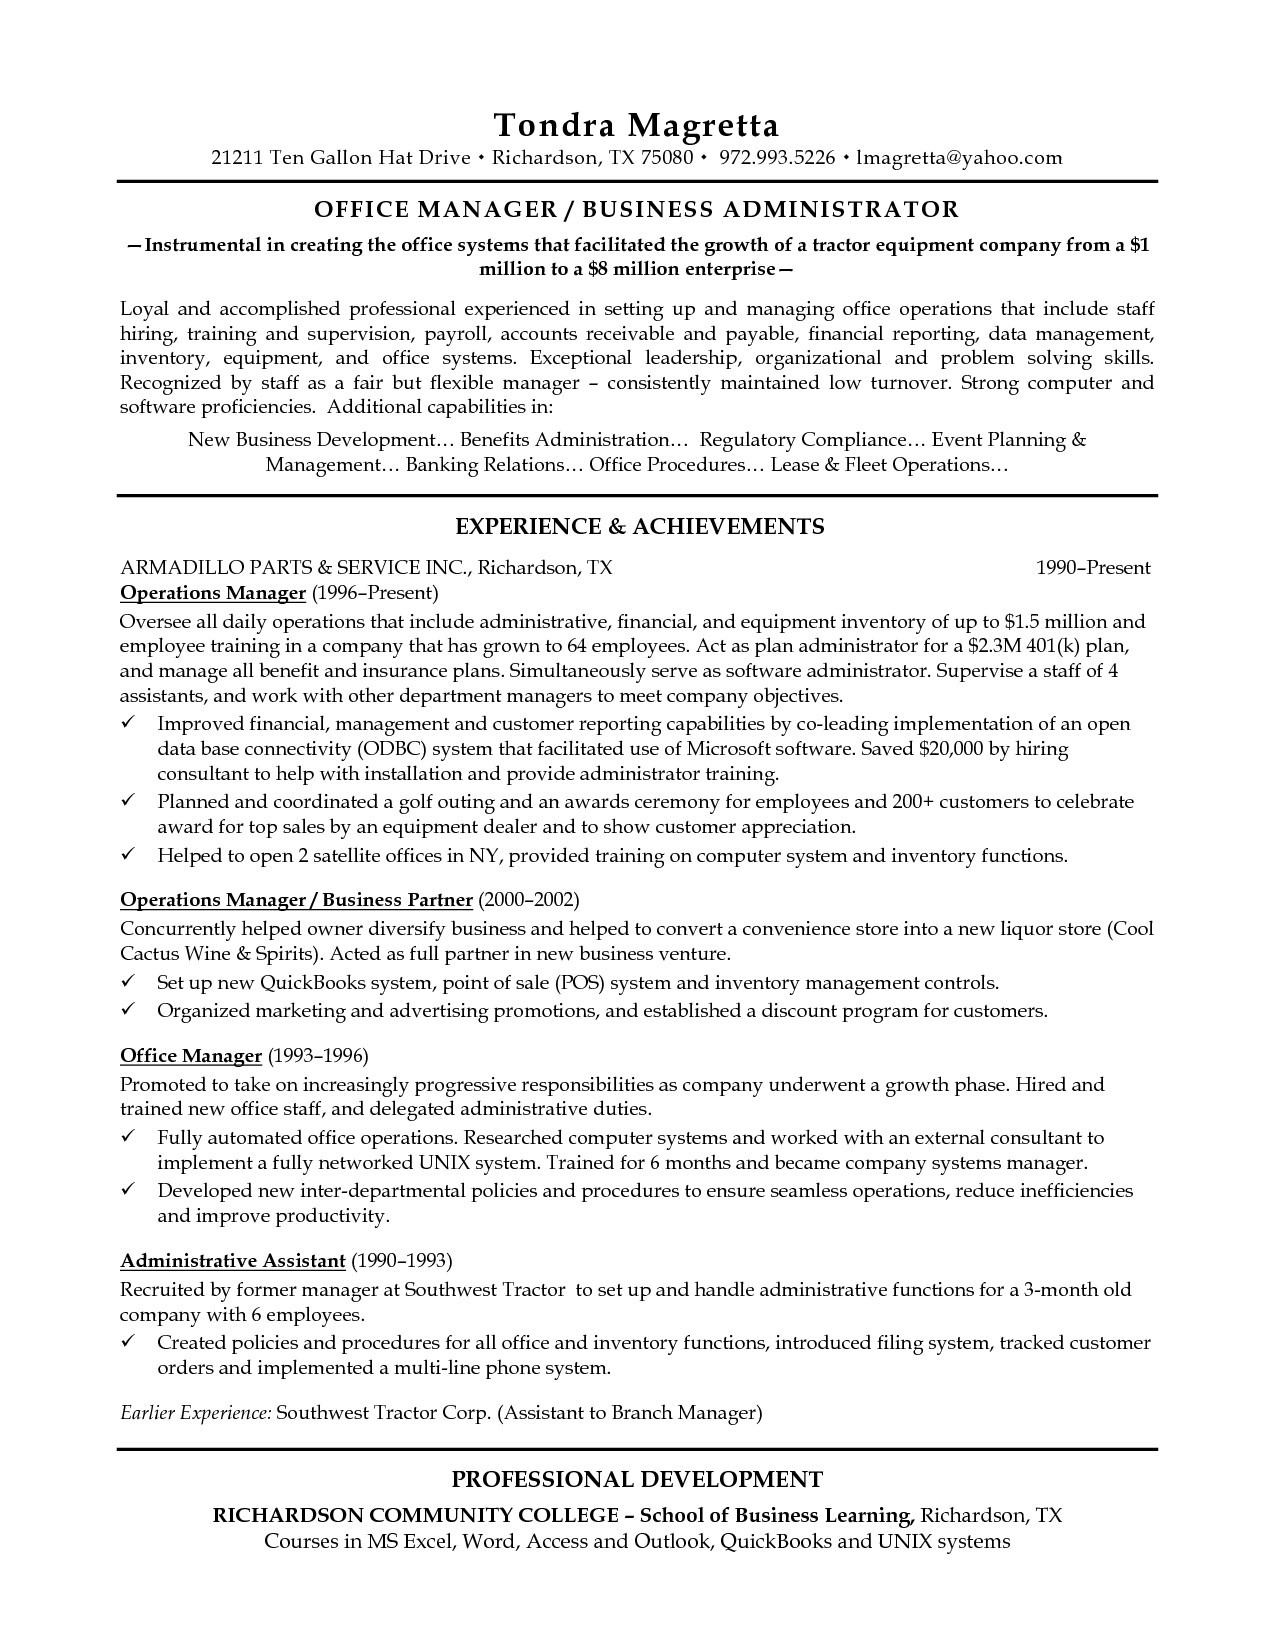 Resume for Retail Store - Retail Store Resume Elegant Best Awesome Store Manager Resume Resume